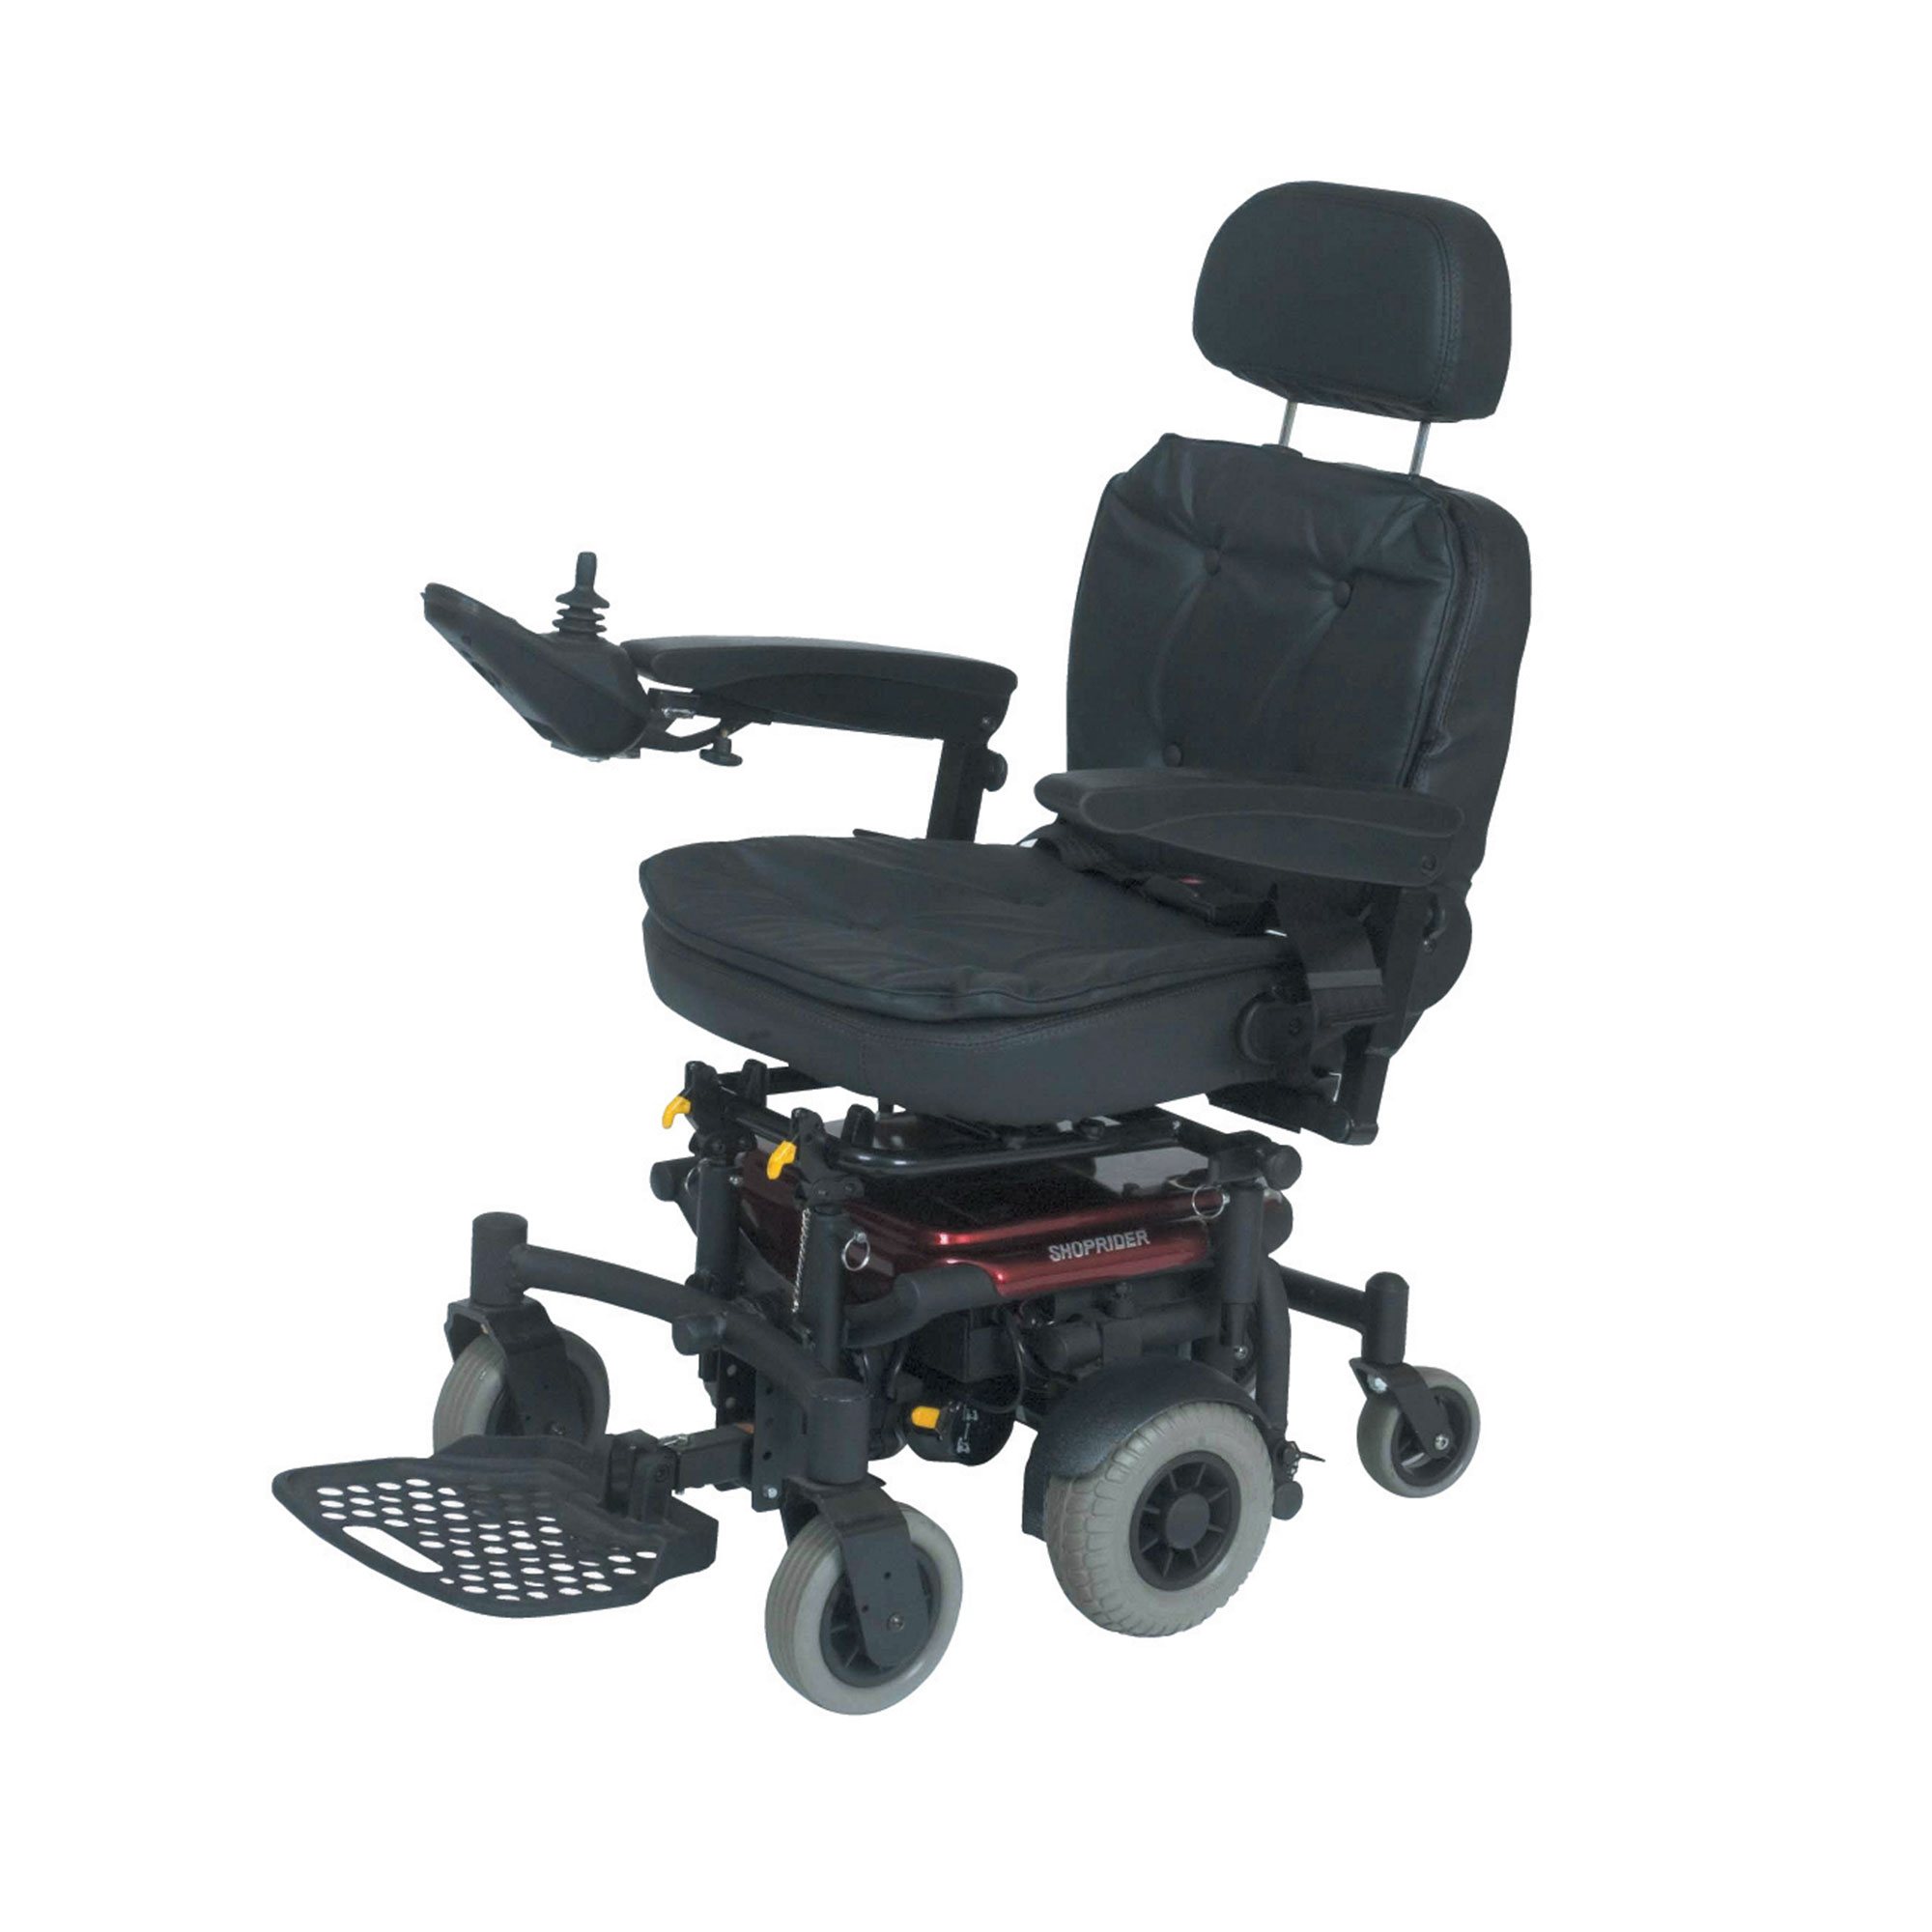 electric wheel chairs heywood wakefield chair and ottoman shoprider sena power roma medical